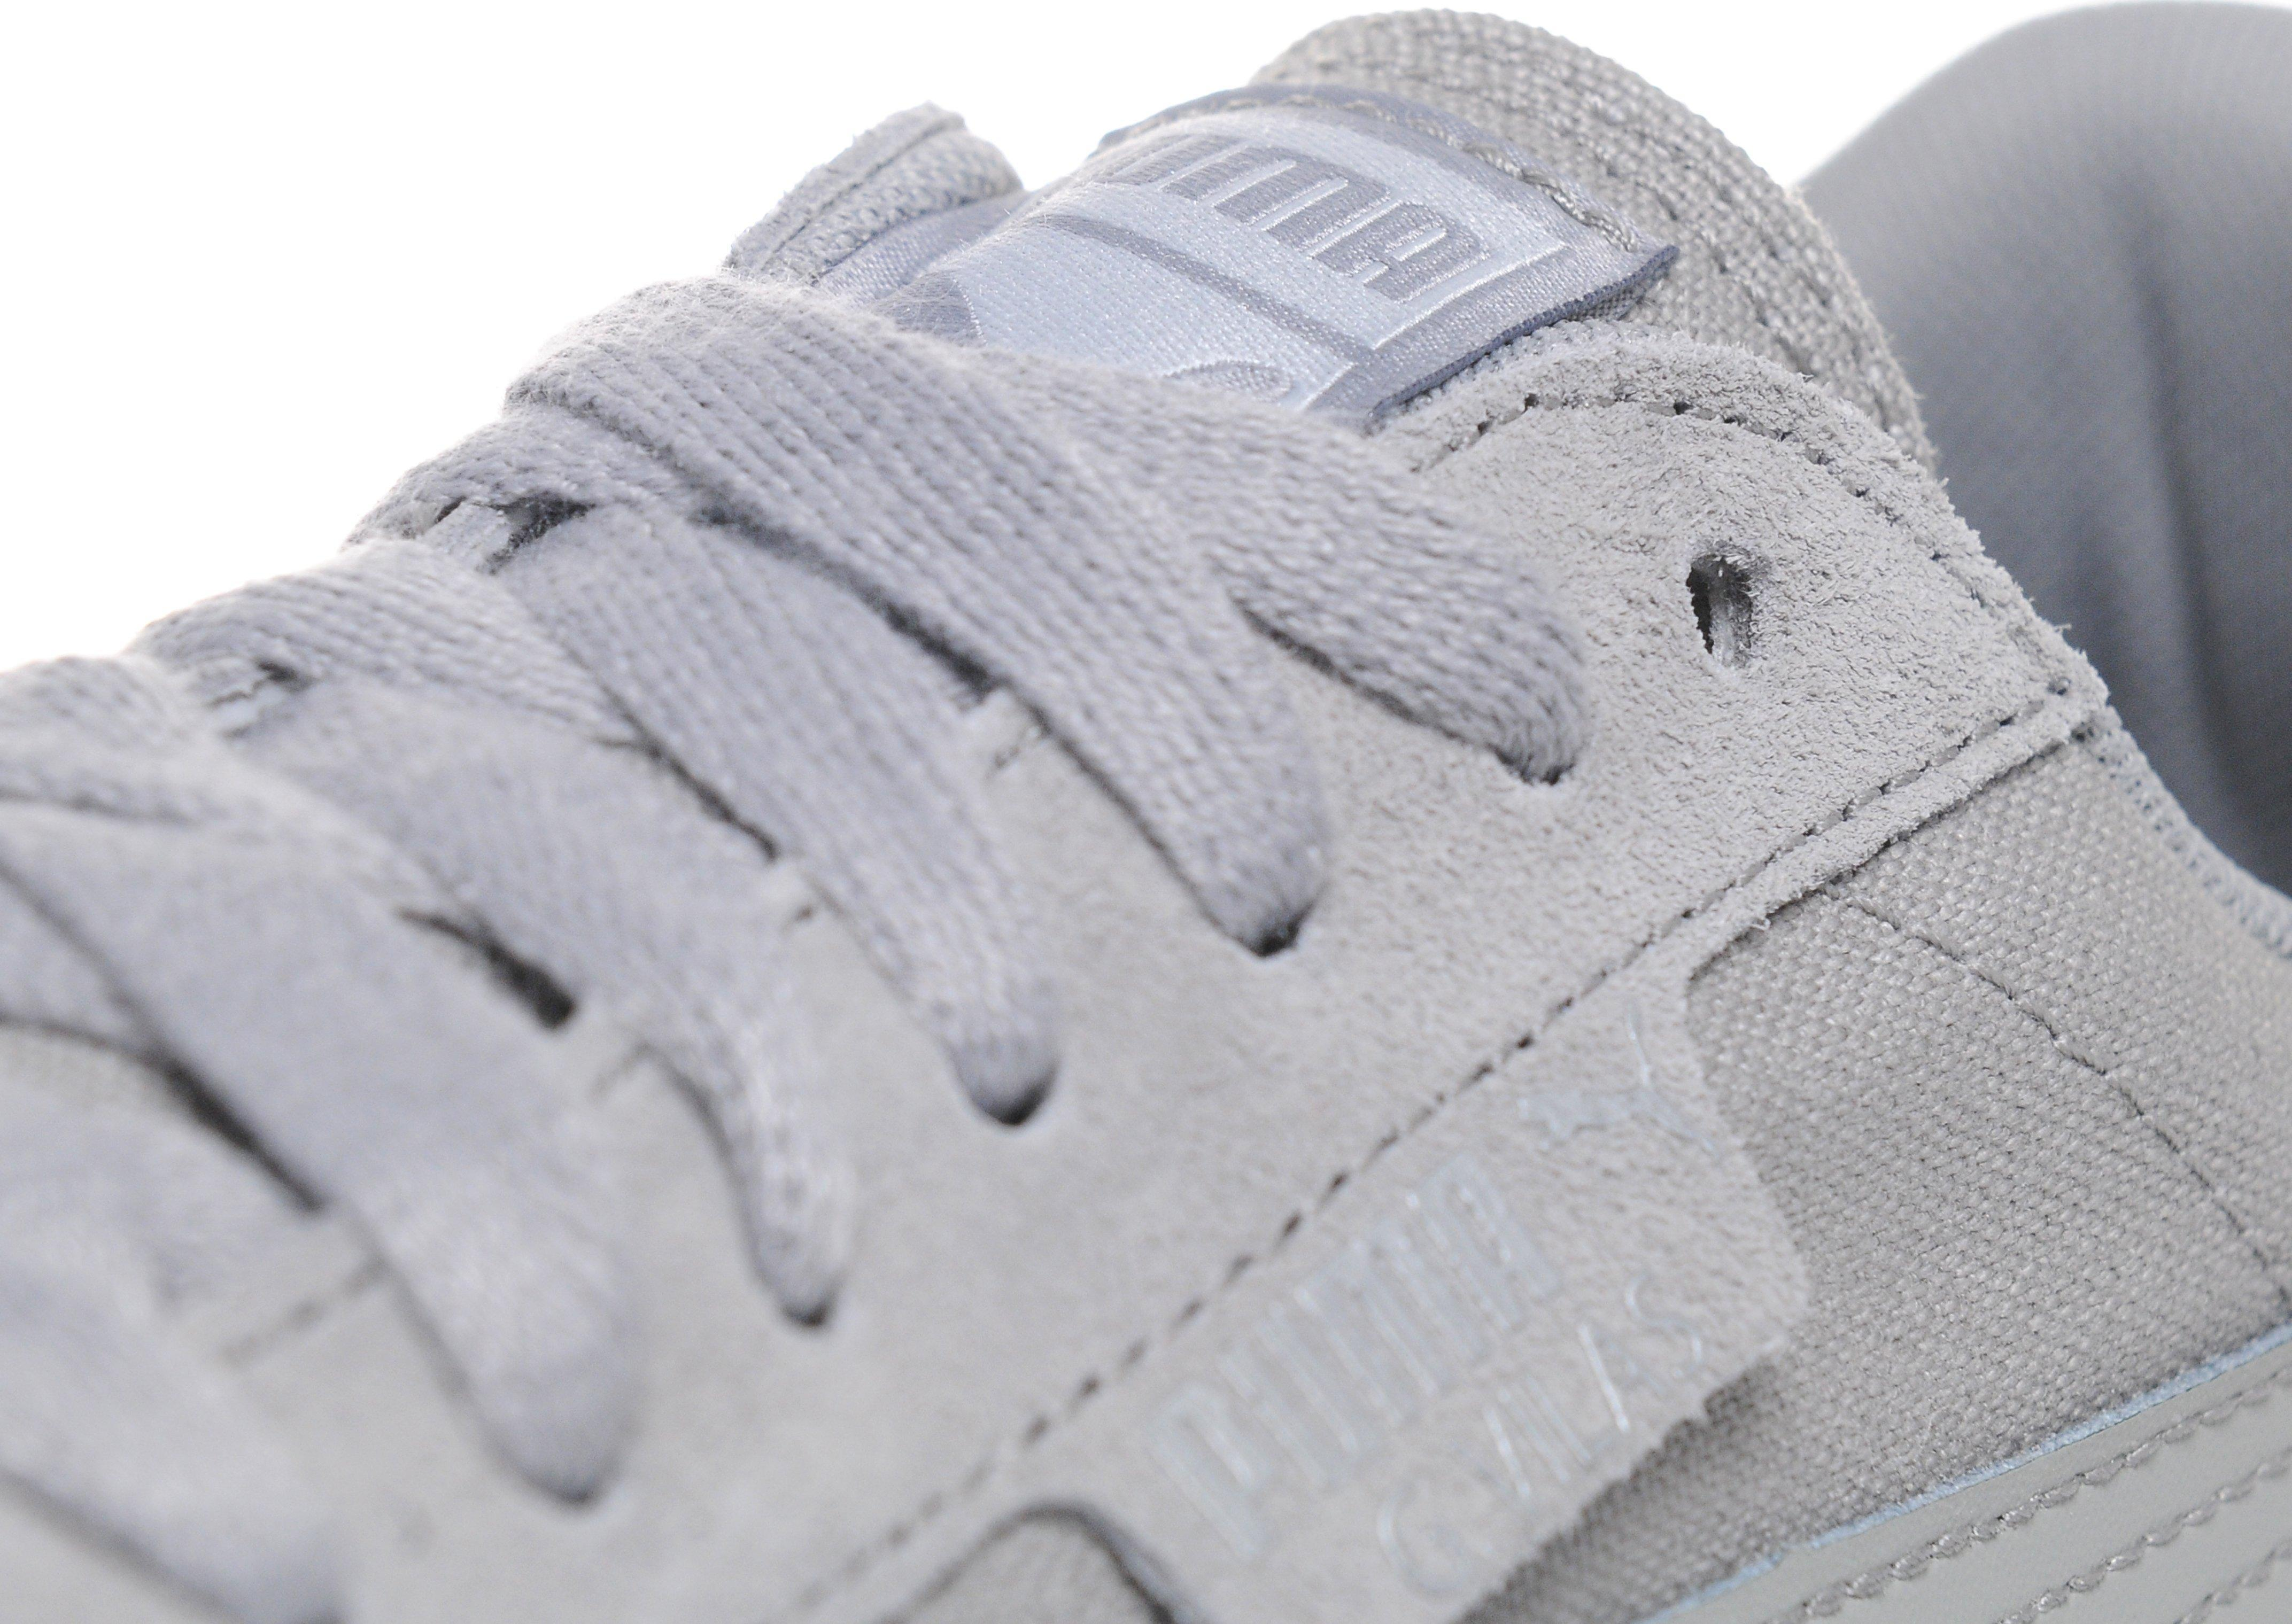 96887cc016c Lyst - PUMA G. Vilas Vulc in White for Men